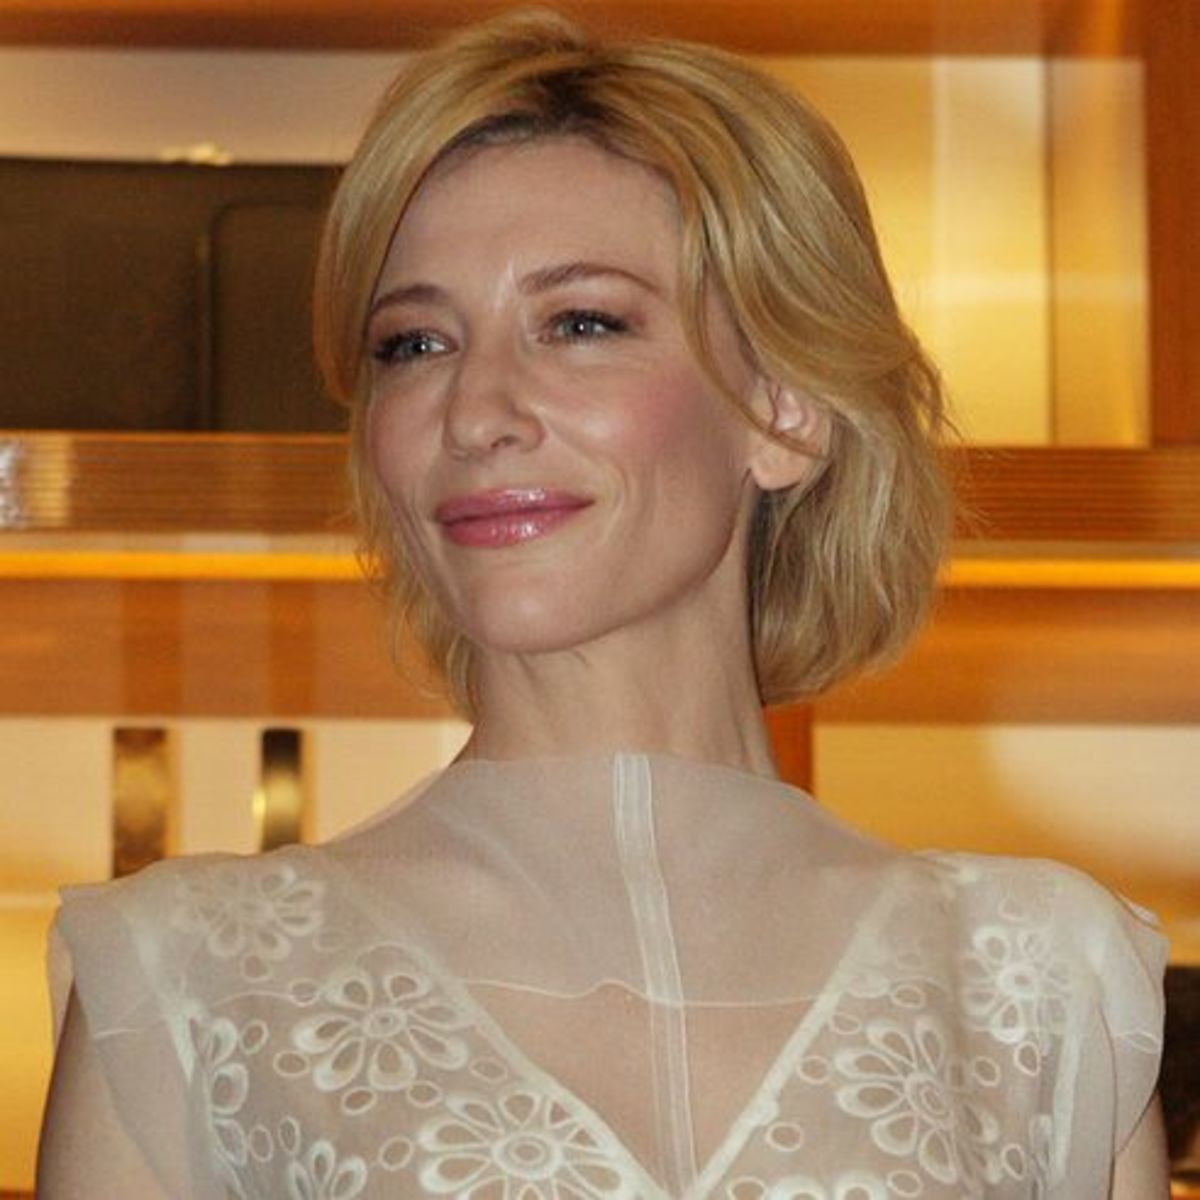 Cate Blanchett, married since 1997